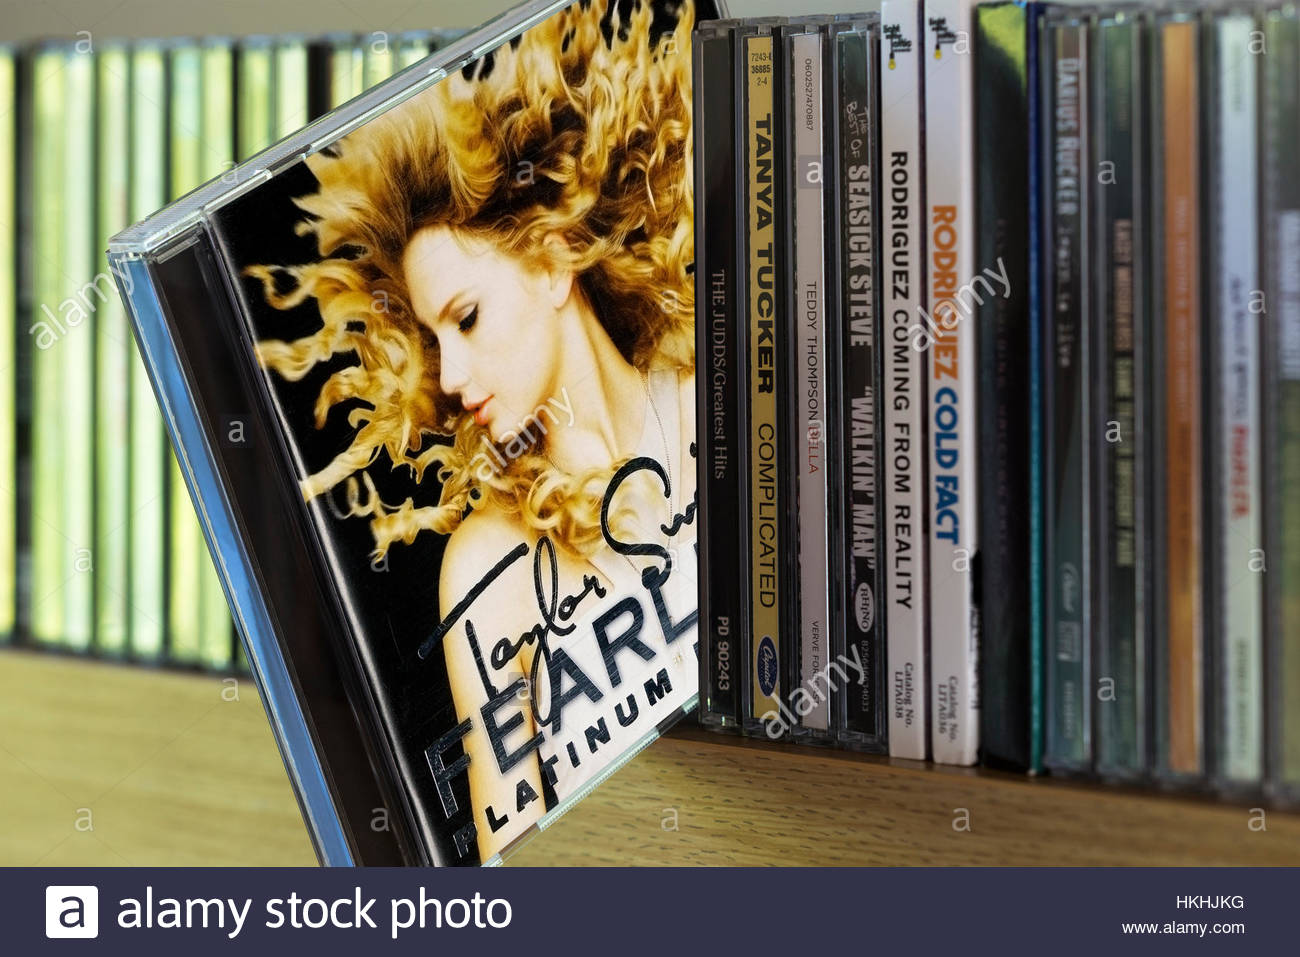 Fearless, Taylor Swift CD pulled out from among other CD's on a shelf - Stock Image